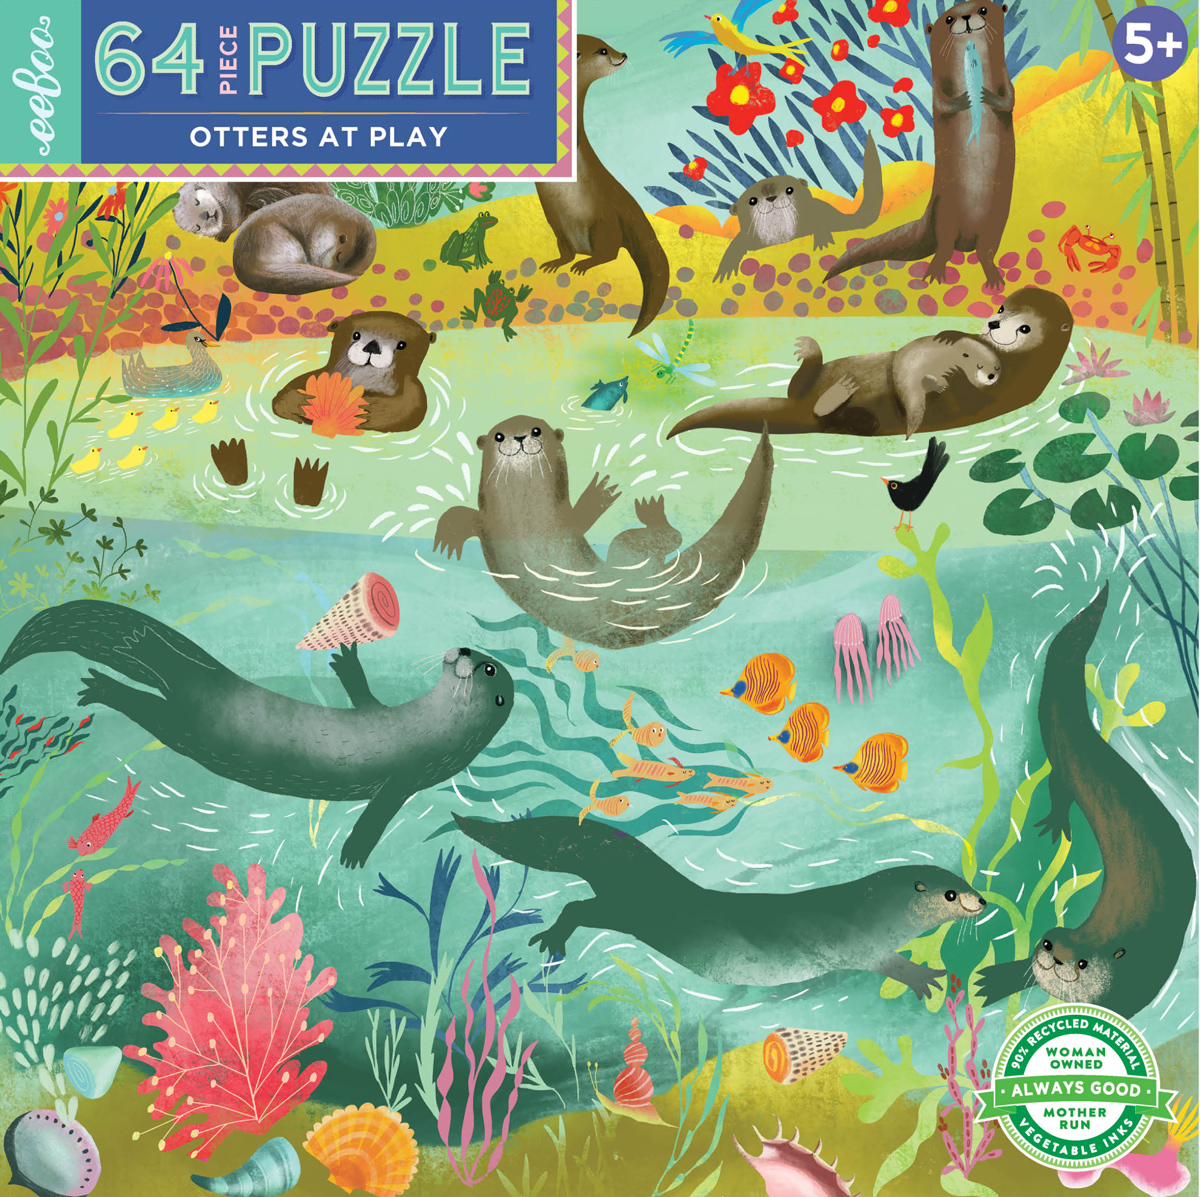 Otters at Play Animals Jigsaw Puzzle